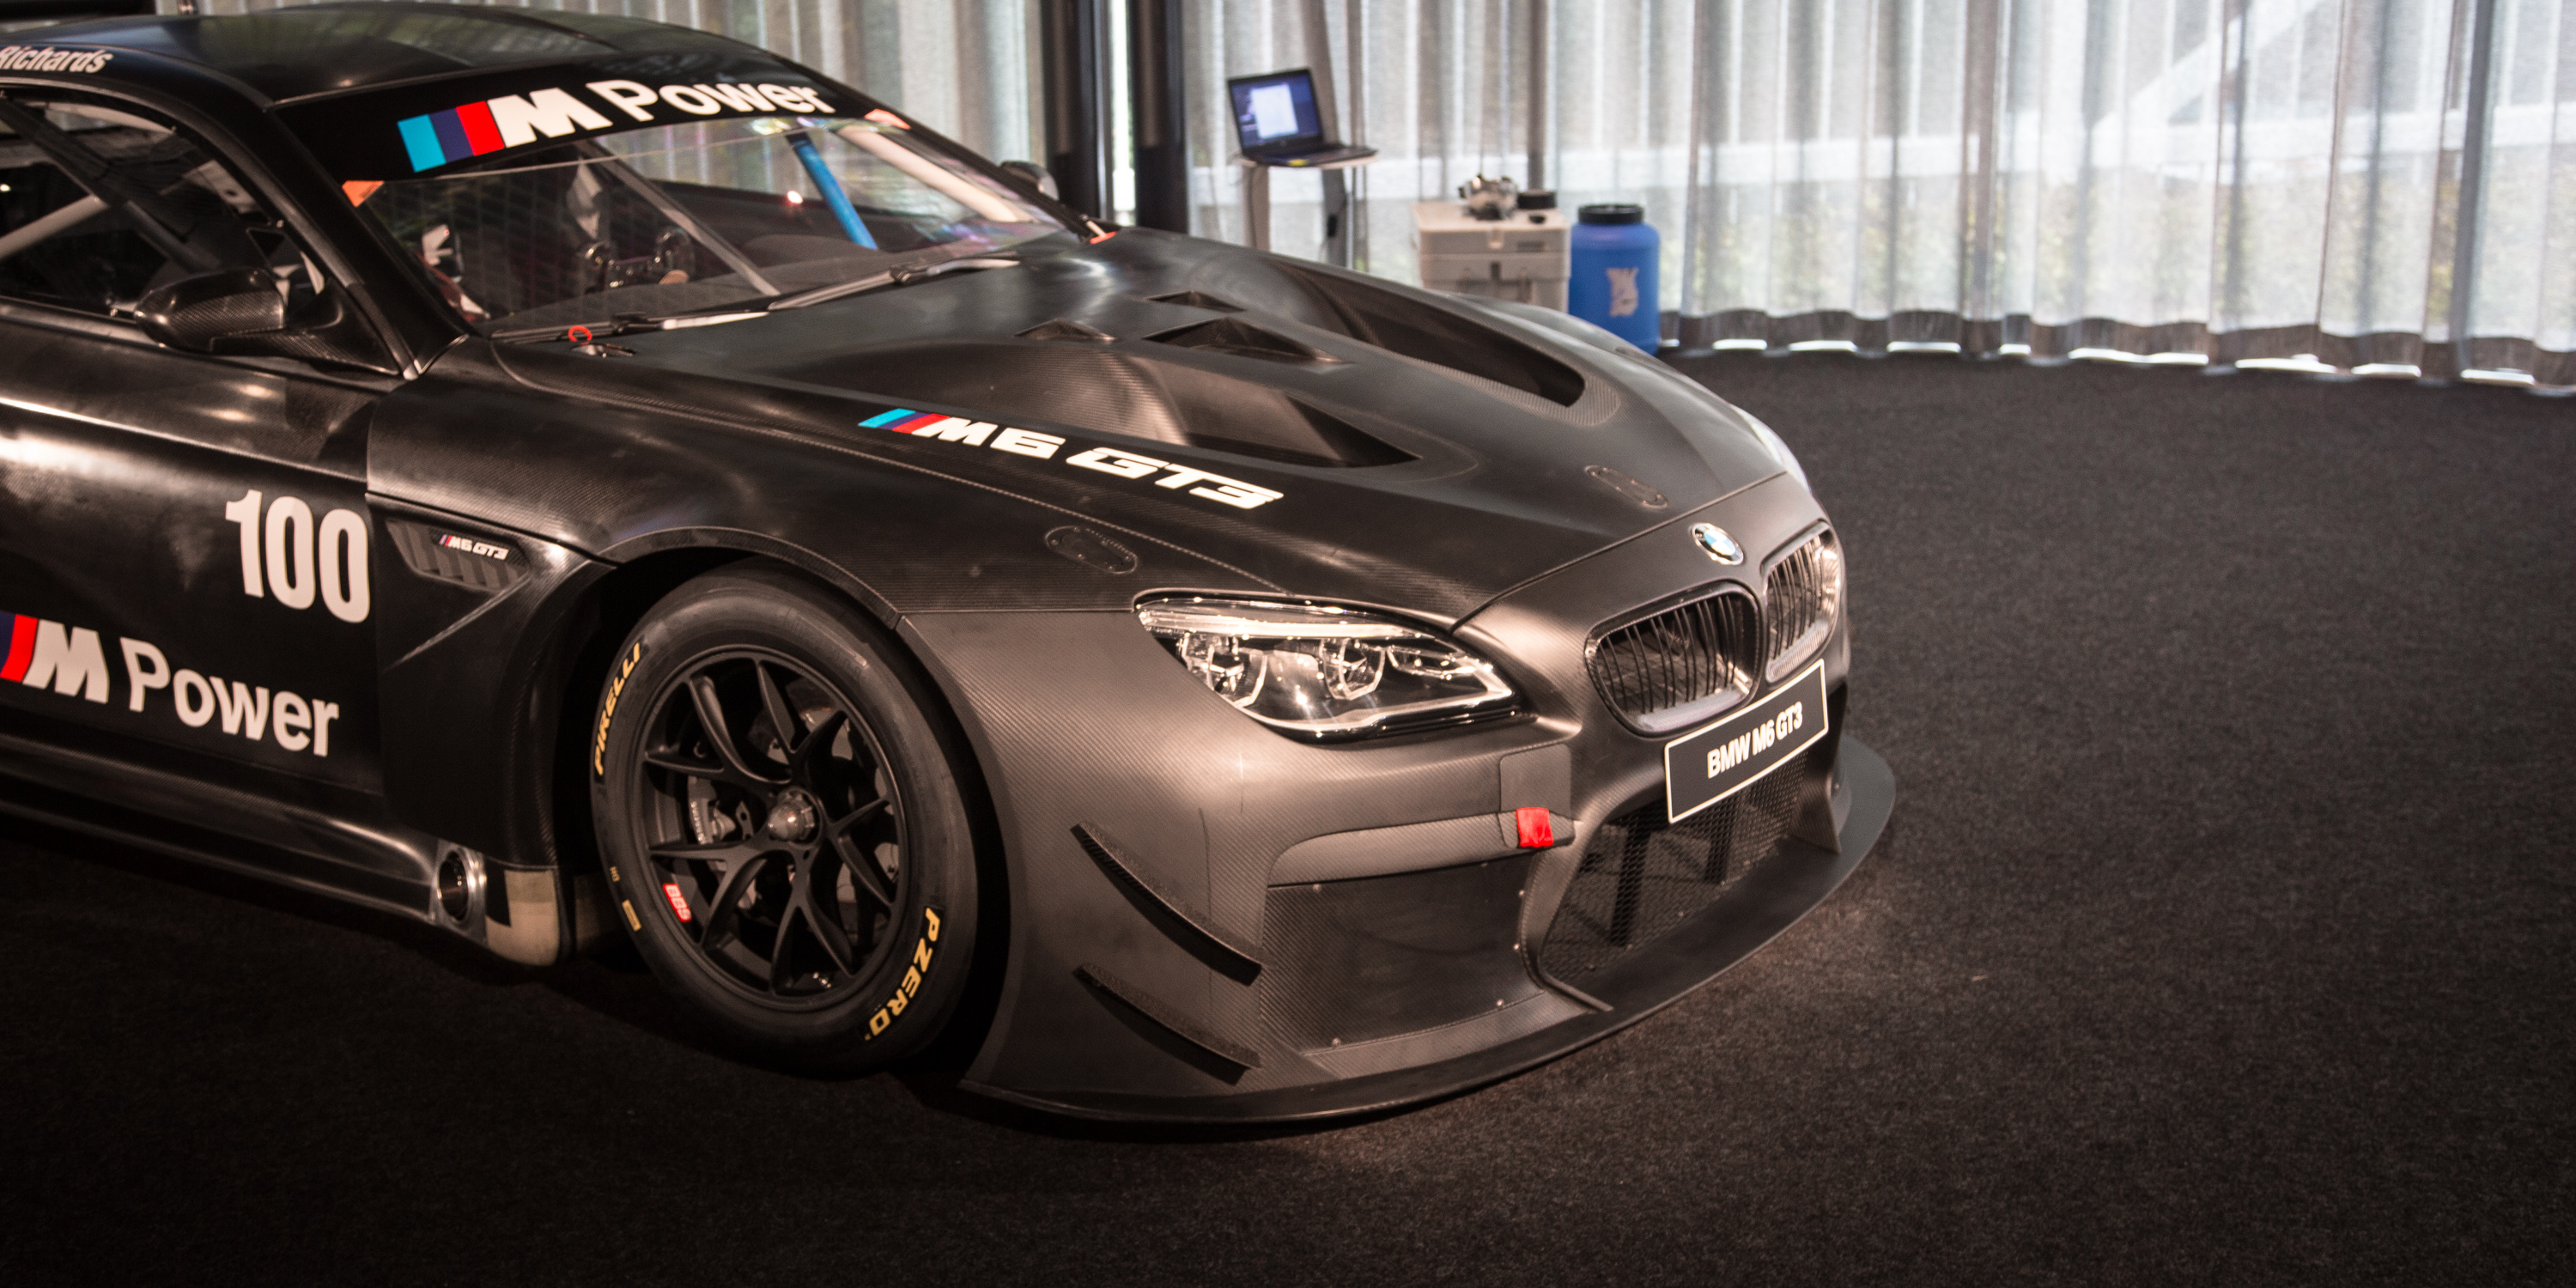 New 2016 BMW M6 GT3 Twinturbo Racer Unveiled In Melbourne